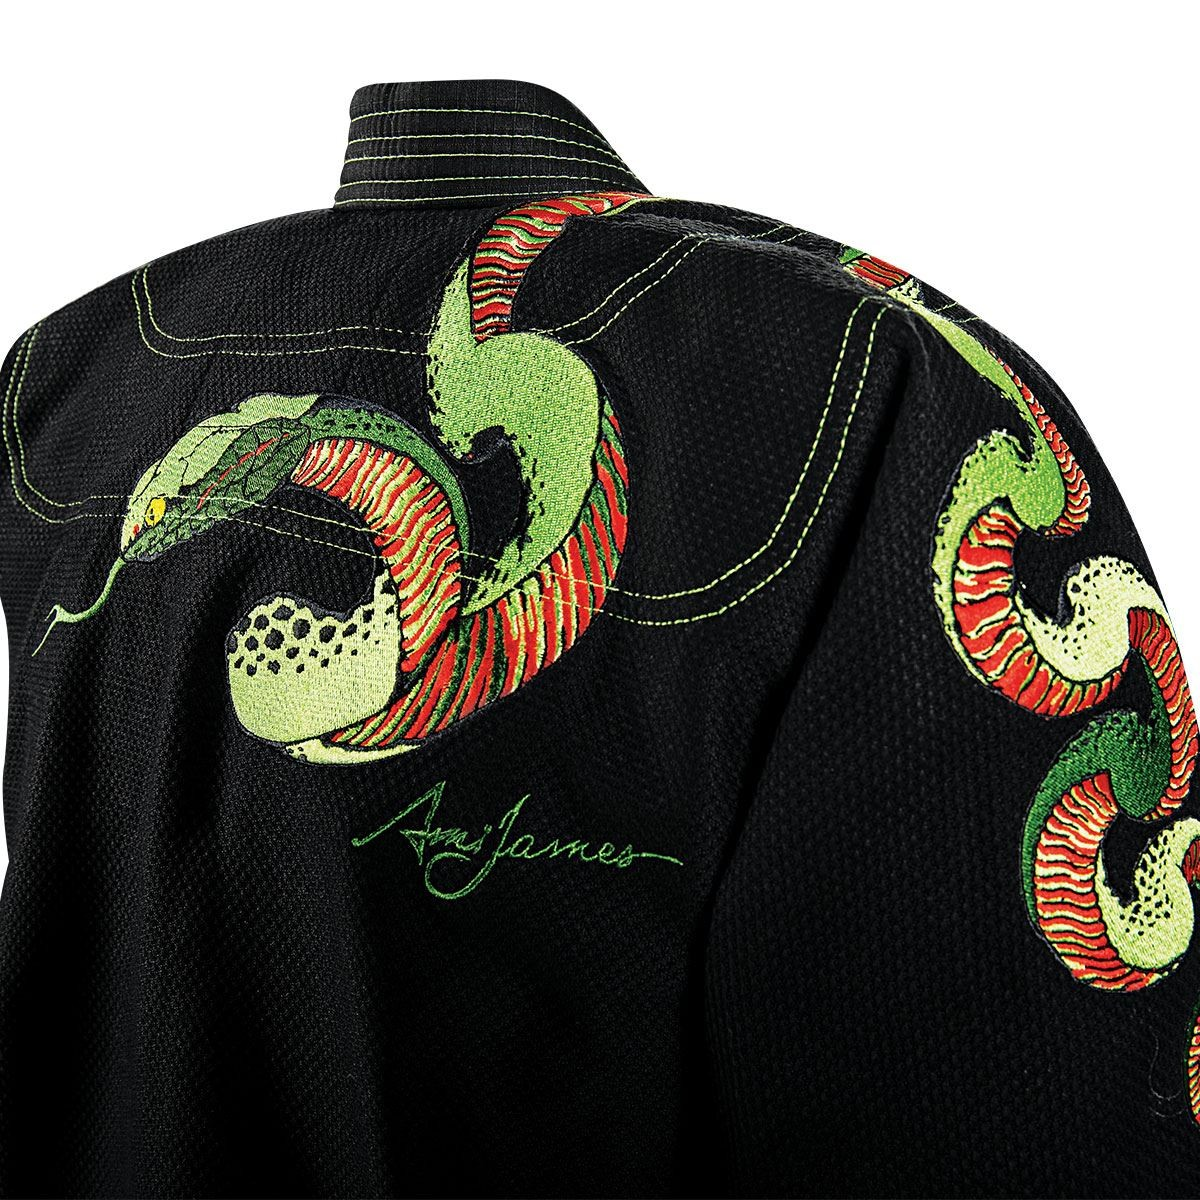 Century Martial Arts Ami James Limited Series Snake